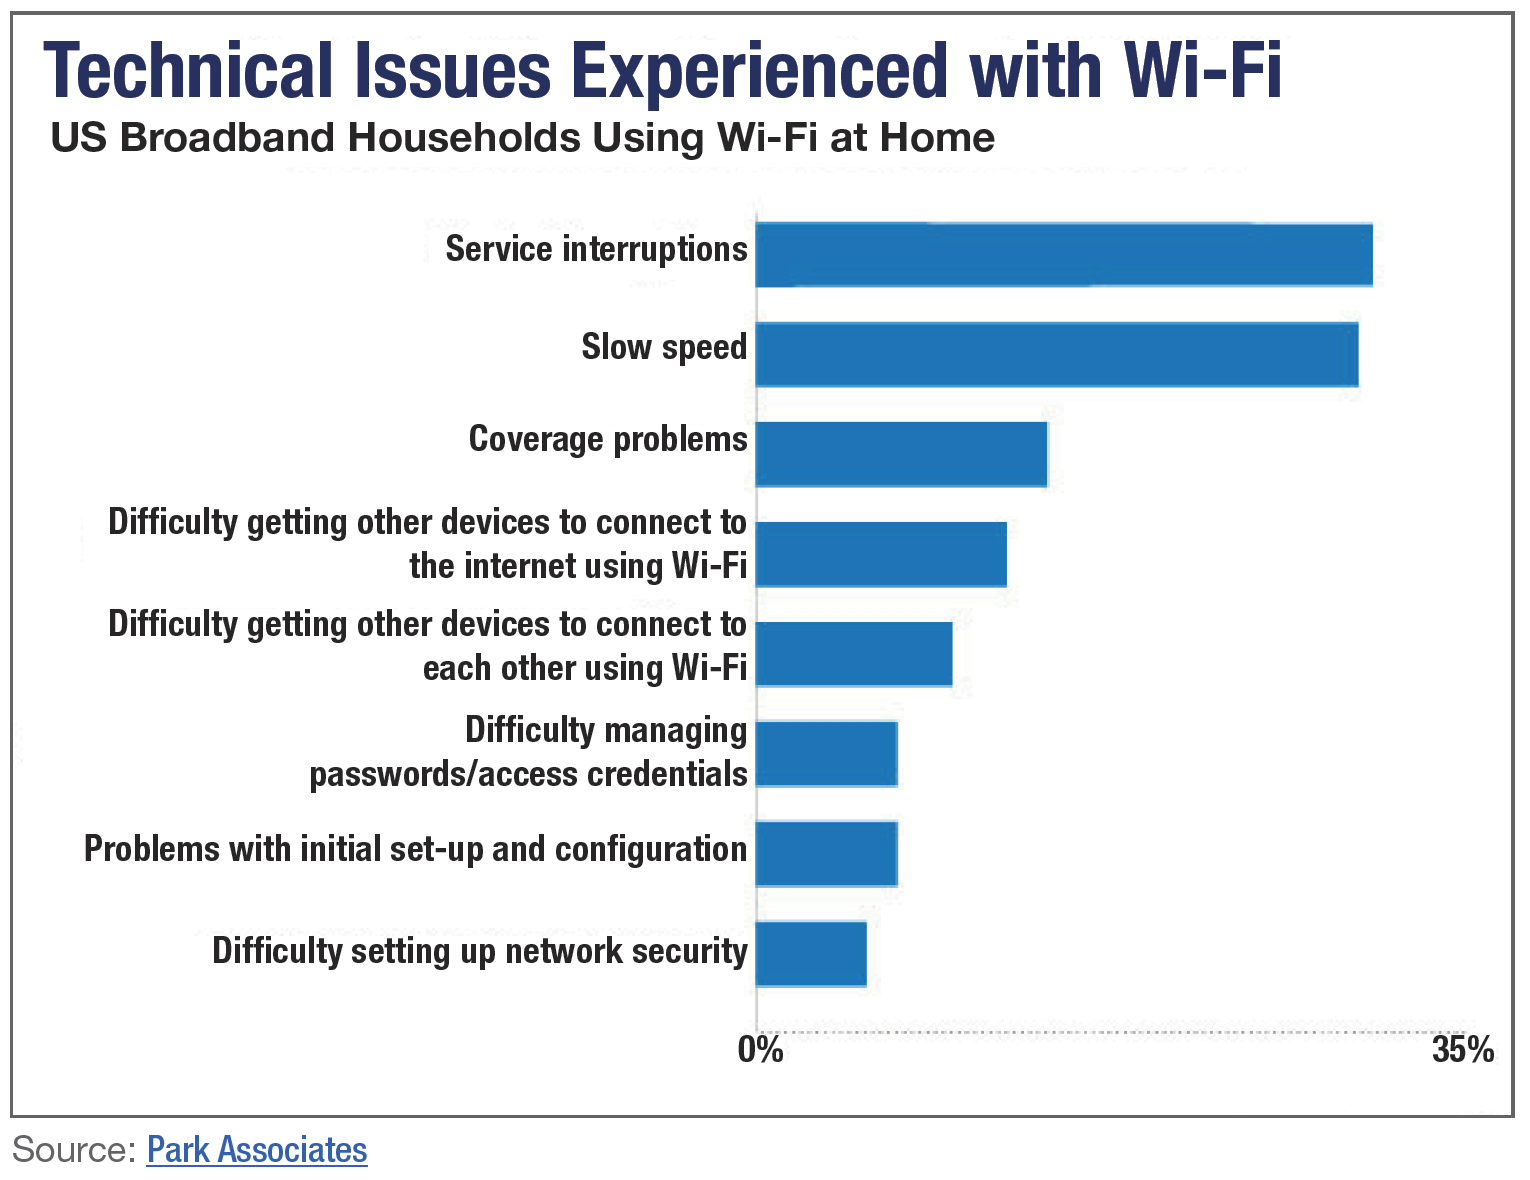 Technical Issues Experienced with Wi-Fi.